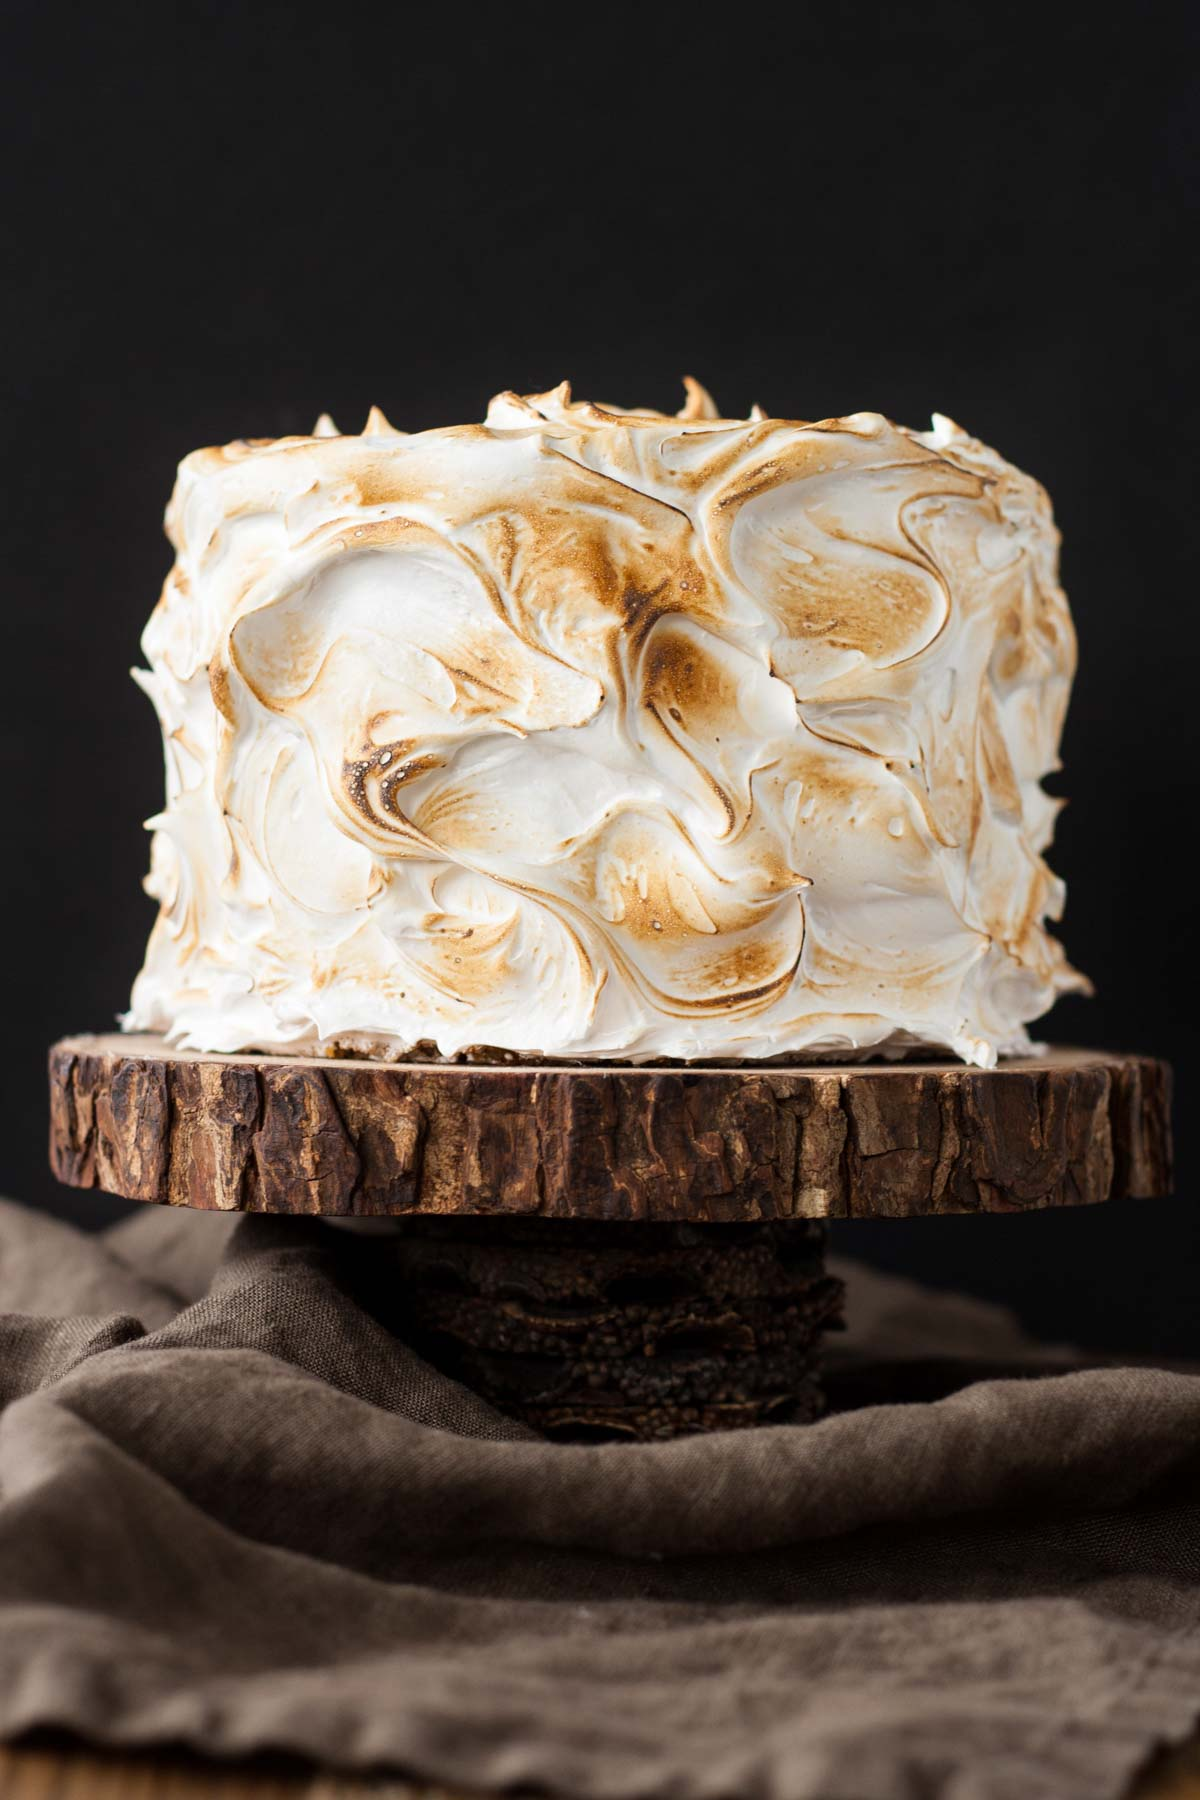 Marshmallow Graham Cracker Cake